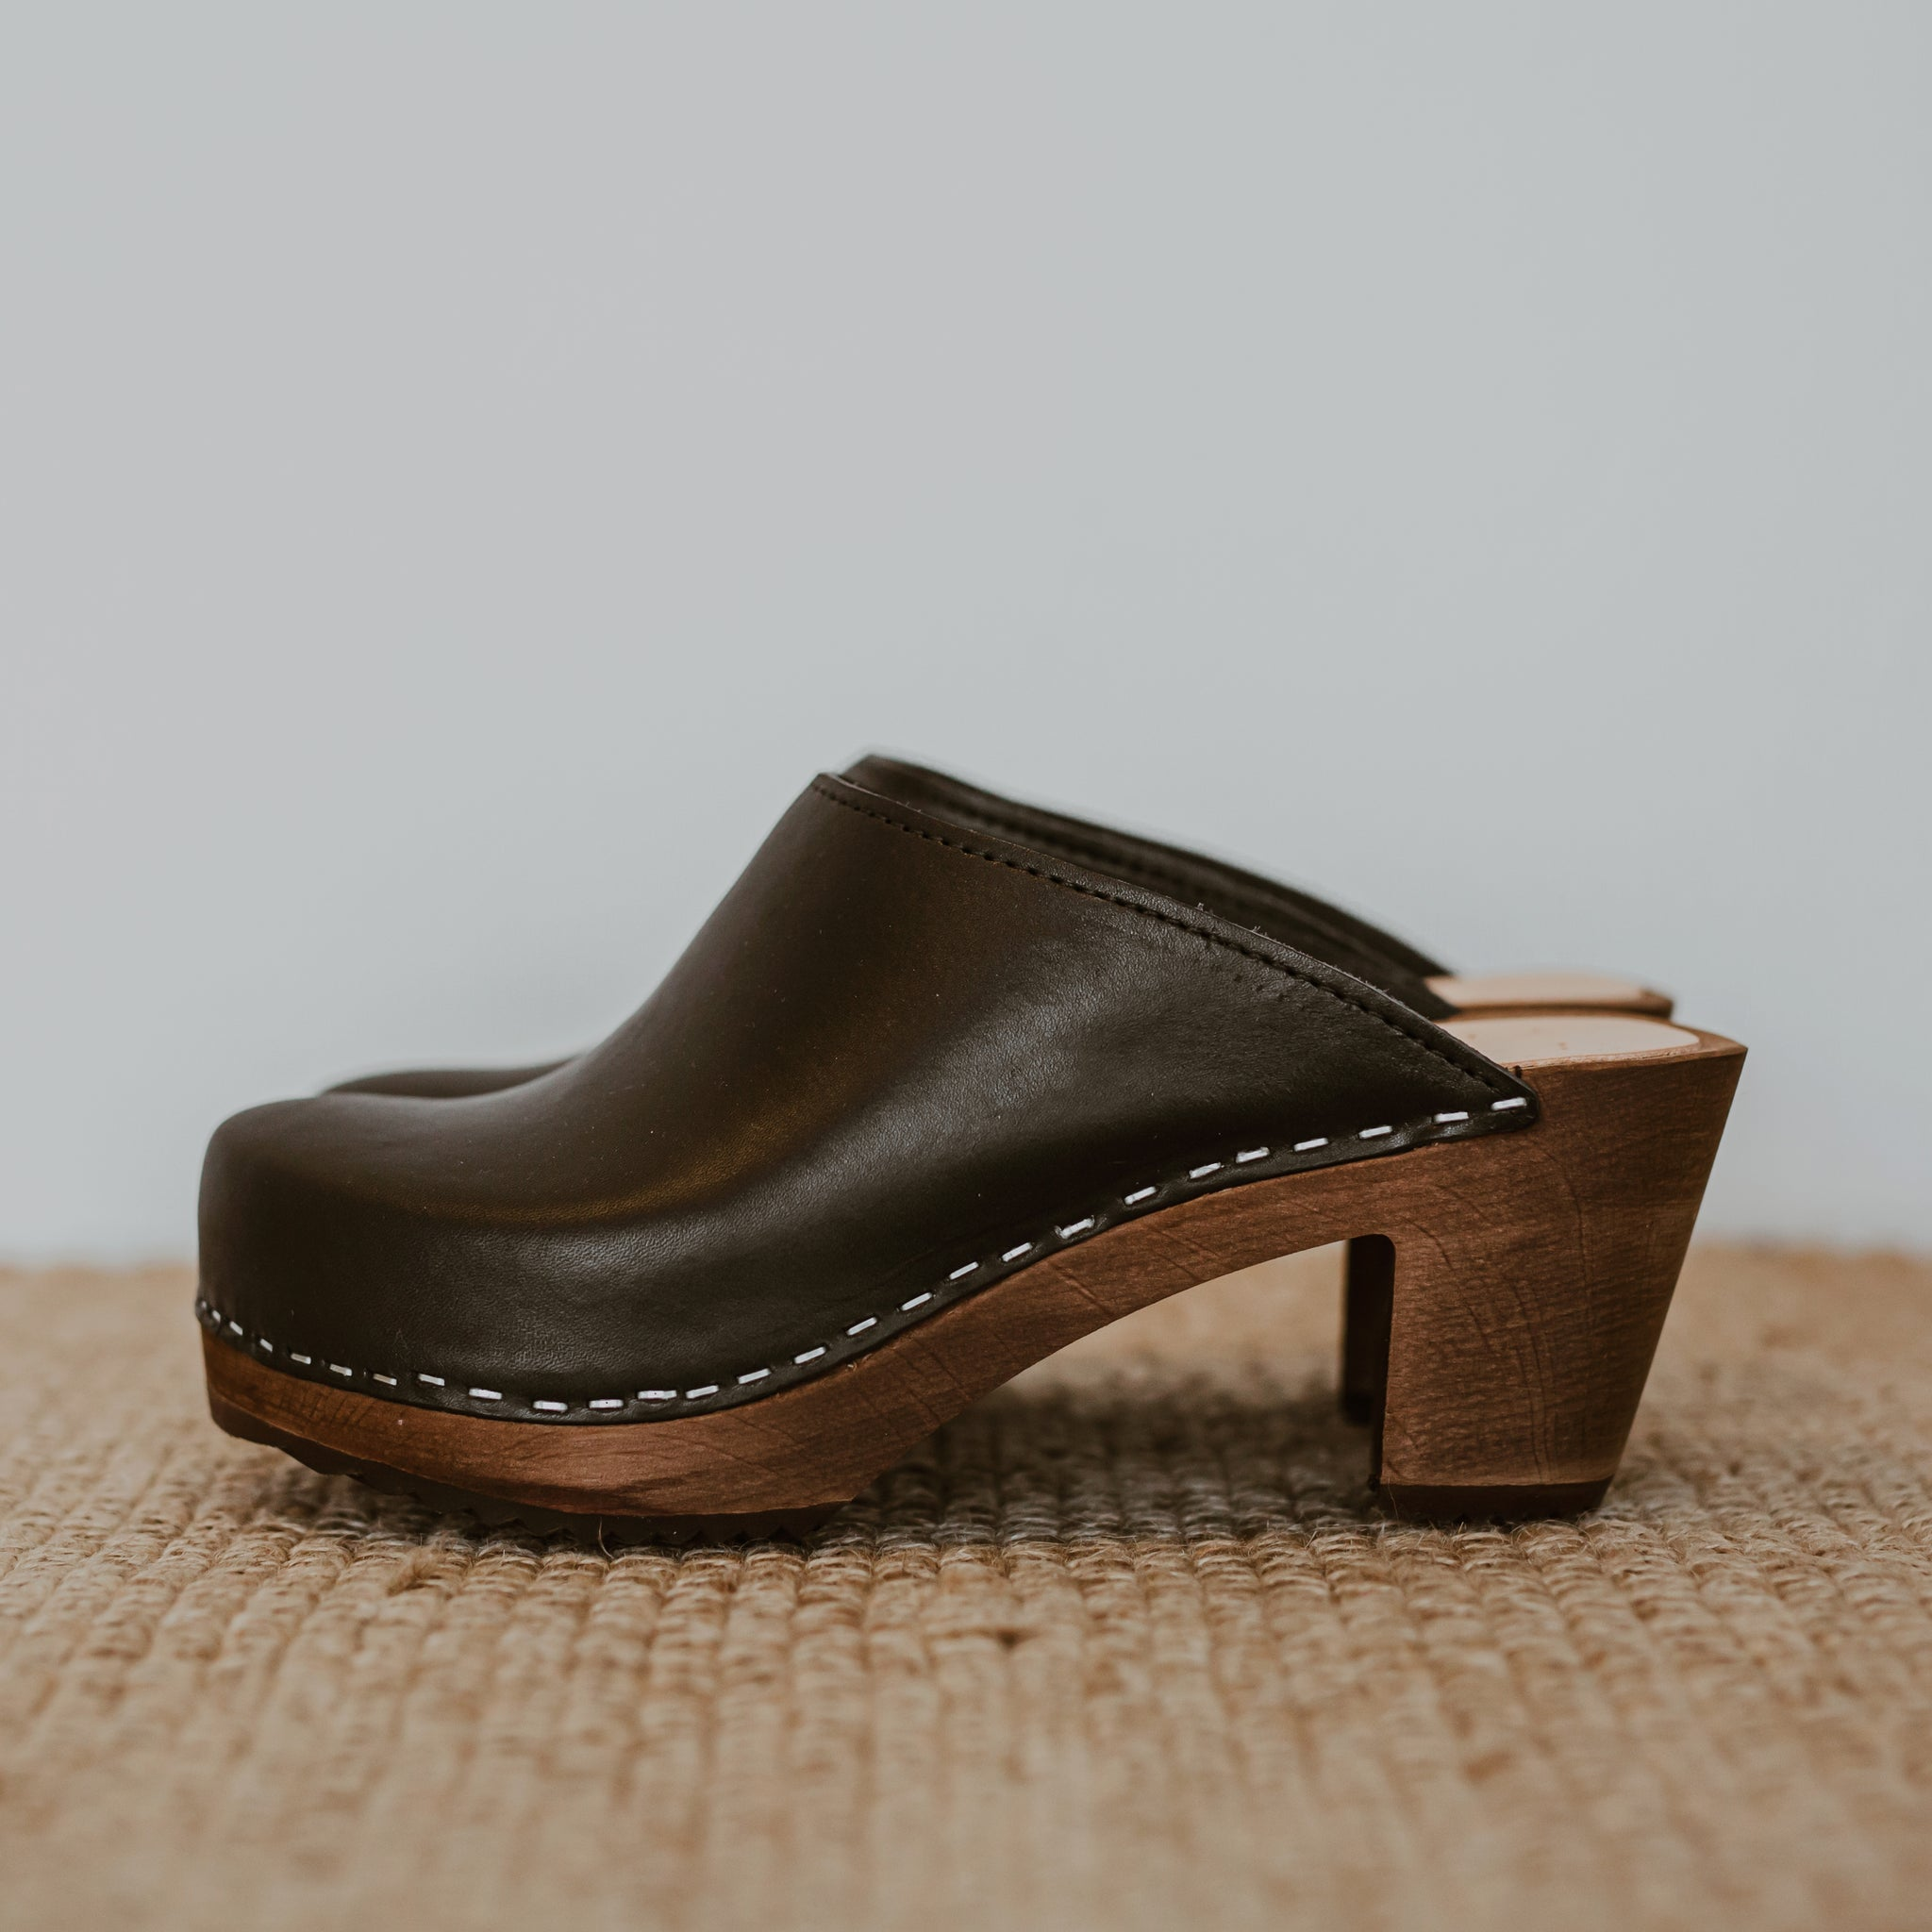 black onyx classic style swedish clog with a mid heel